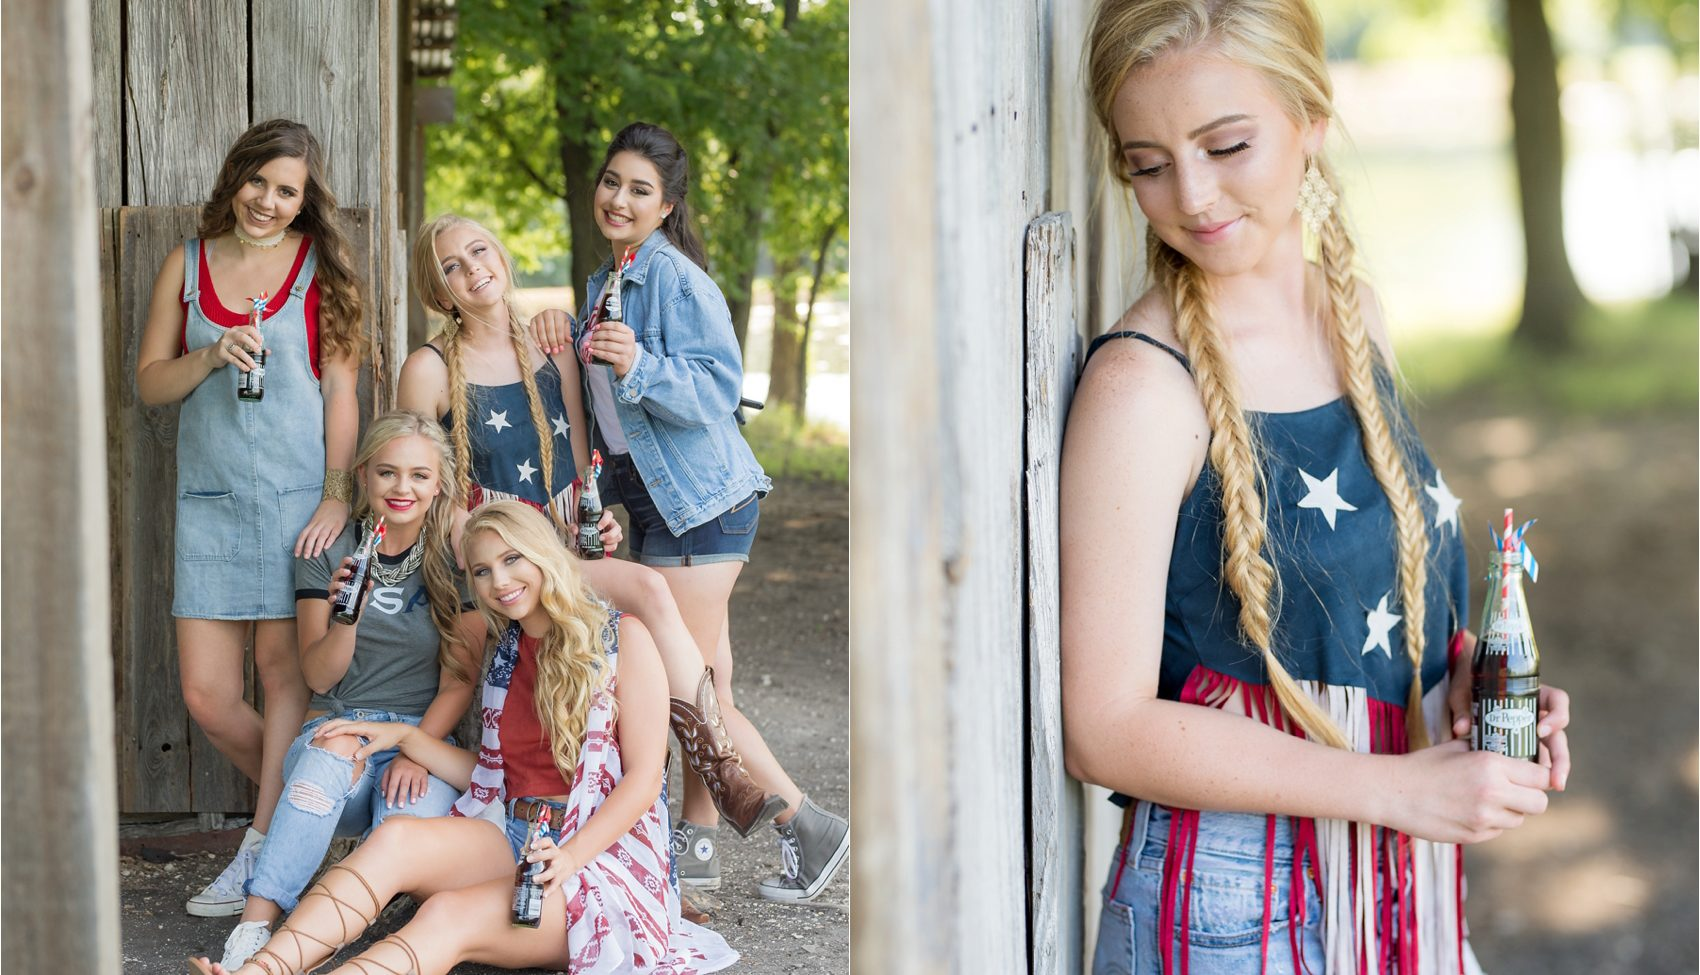 America Themed Shoot  |  PWSH Seniors '18  |  Allen, TX Senior Photography